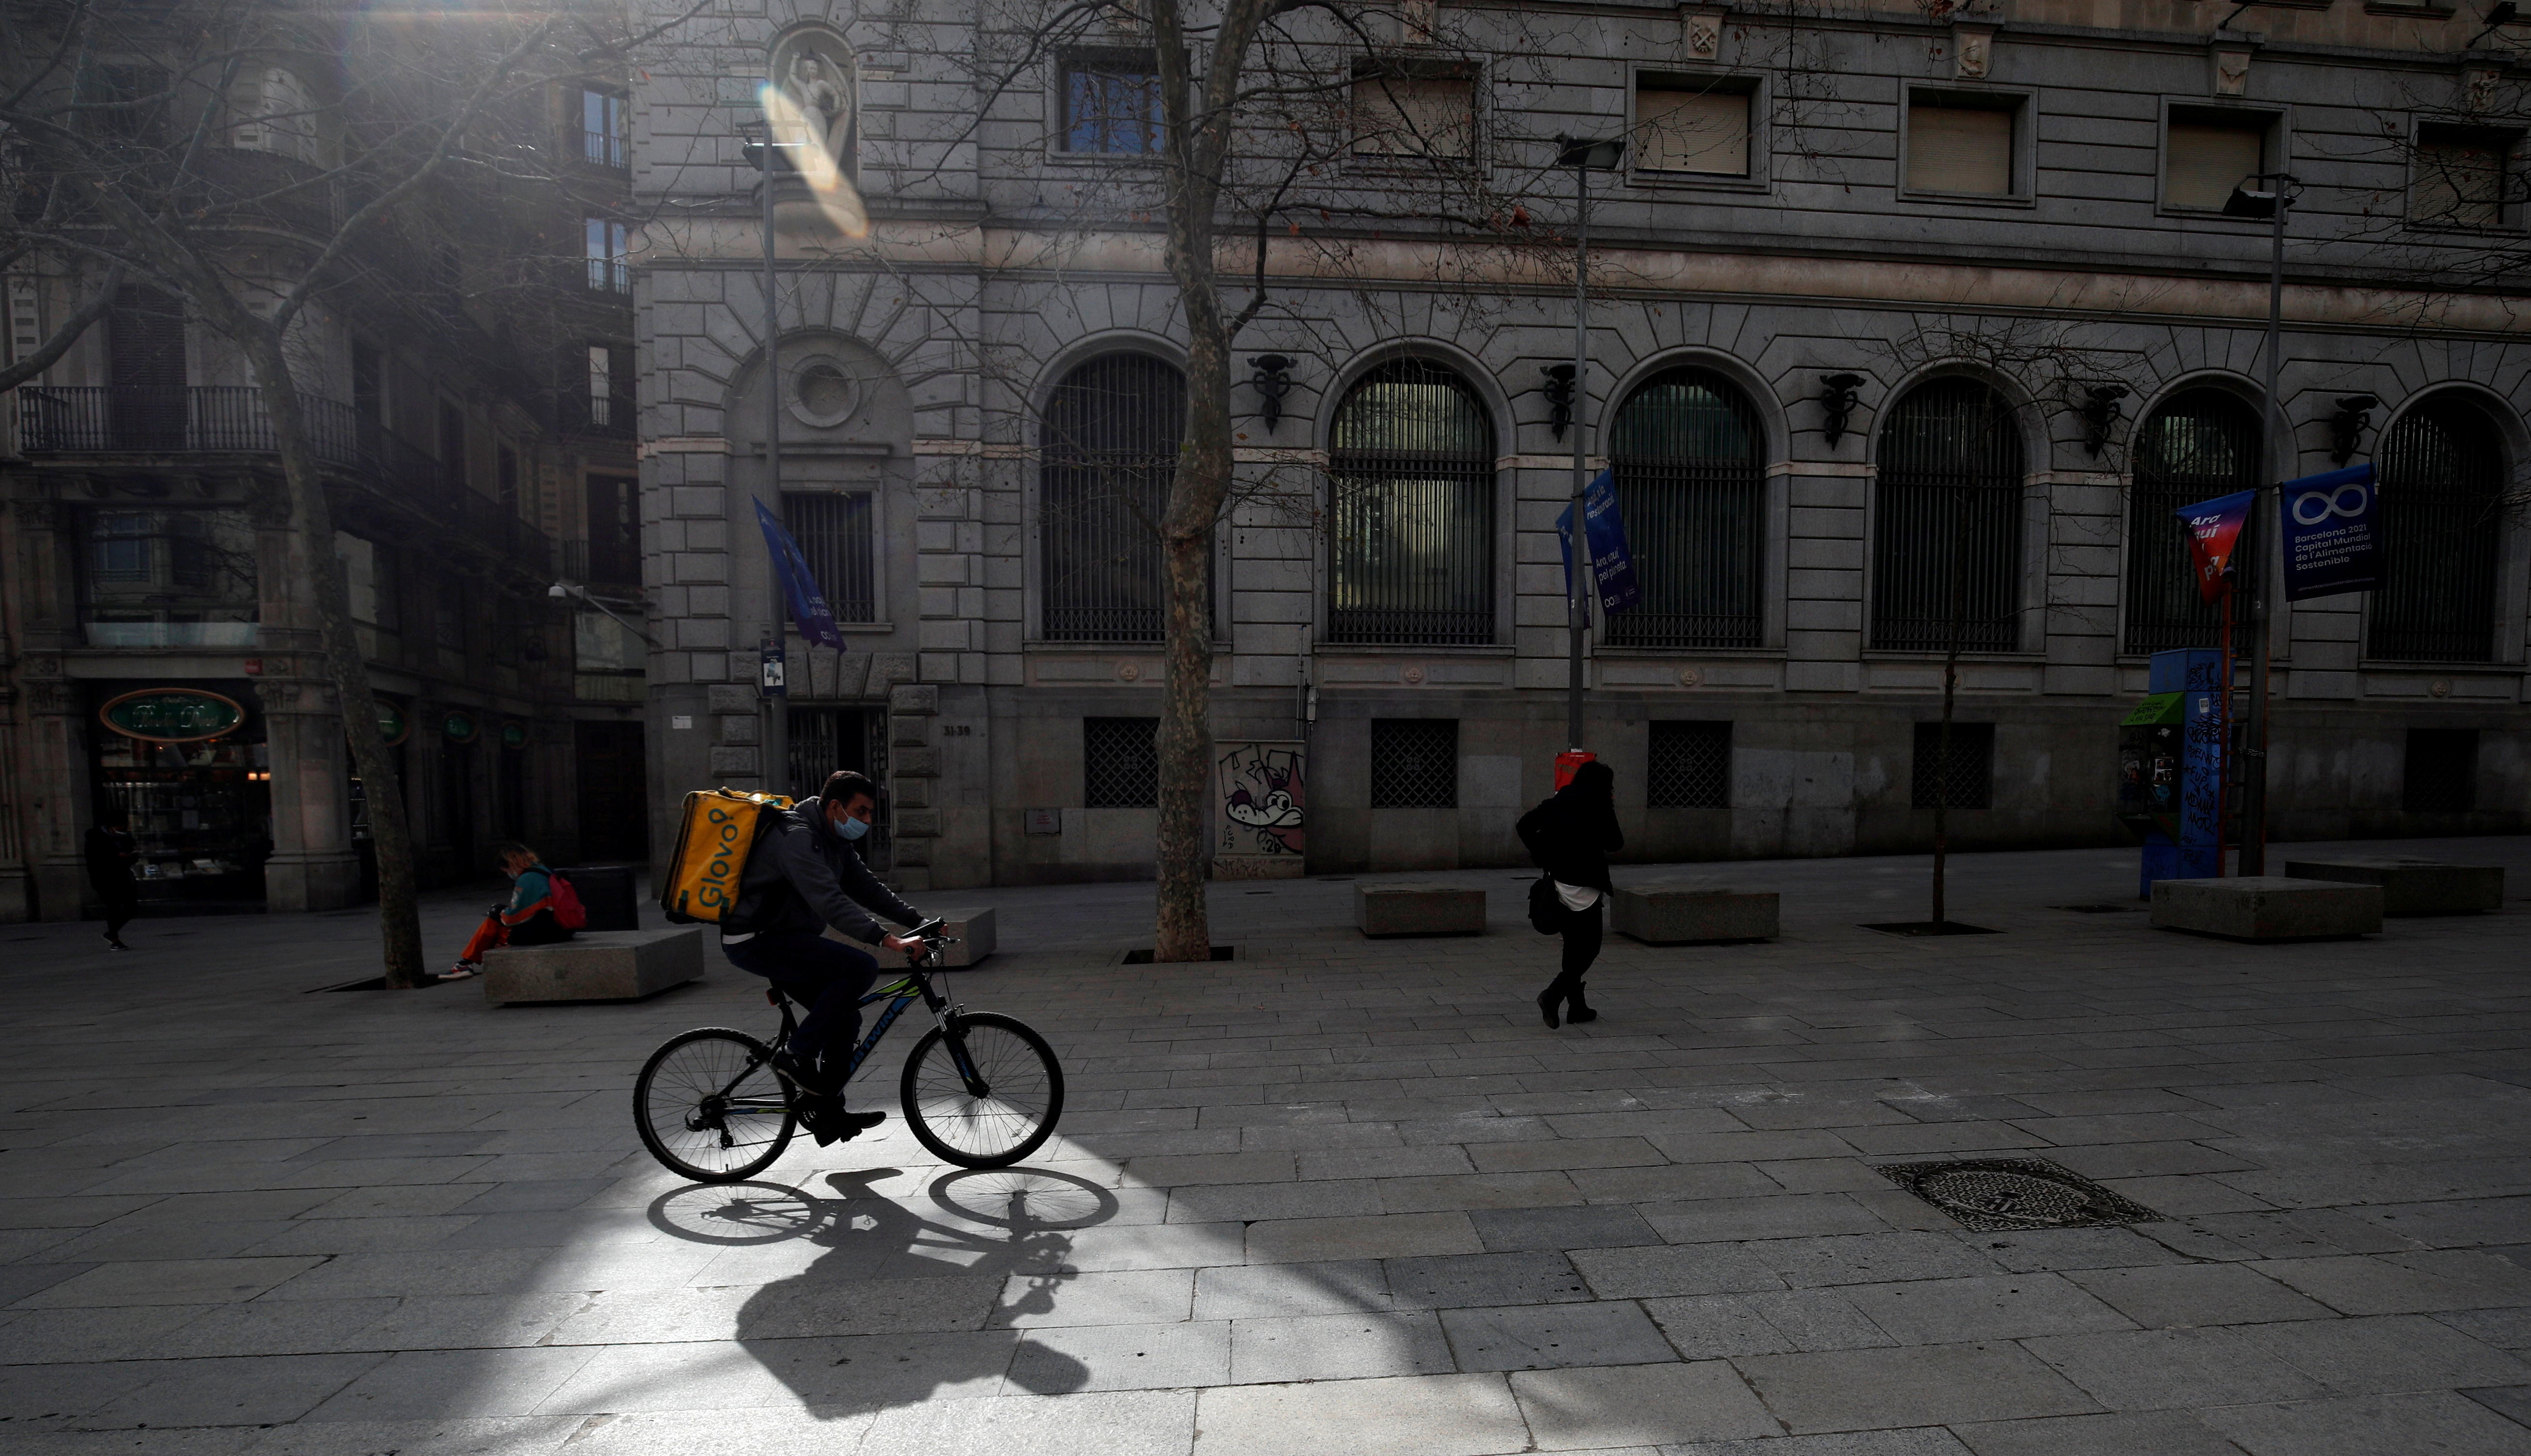 Glovo deliver rider passes through a pedestrian area in Barcelona, Spain, February 23, 2021. Picture taken on February 23, 2021. REUTERS/ Albert Gea     TPX IMAGES OF THE DAY - RC2M3M959G33